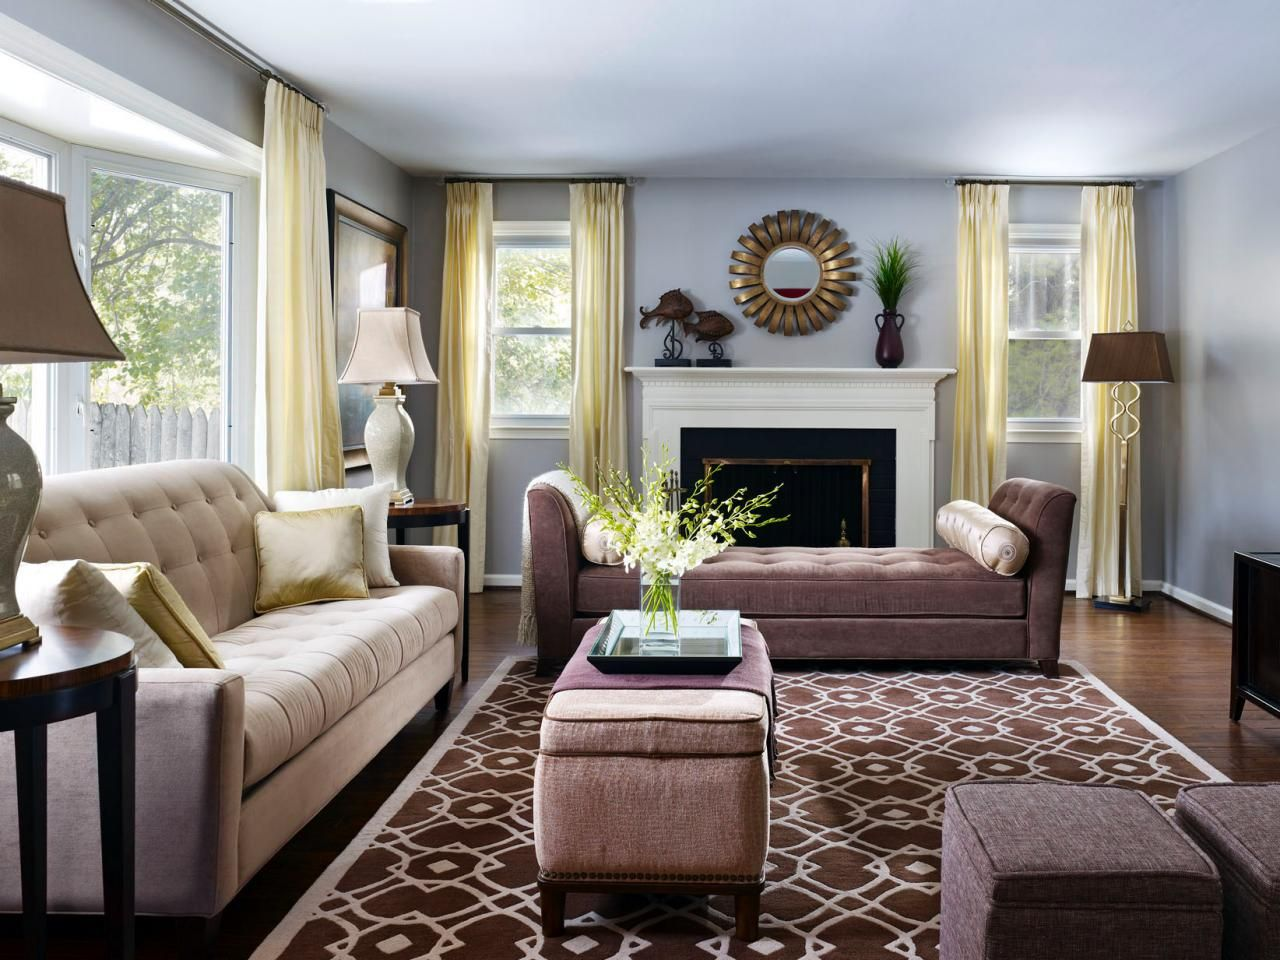 Transitional Living Room With Neutral Furnishings Living Room Design Styles Living Room Style Transitional Living Rooms #neutral #transitional #living #room